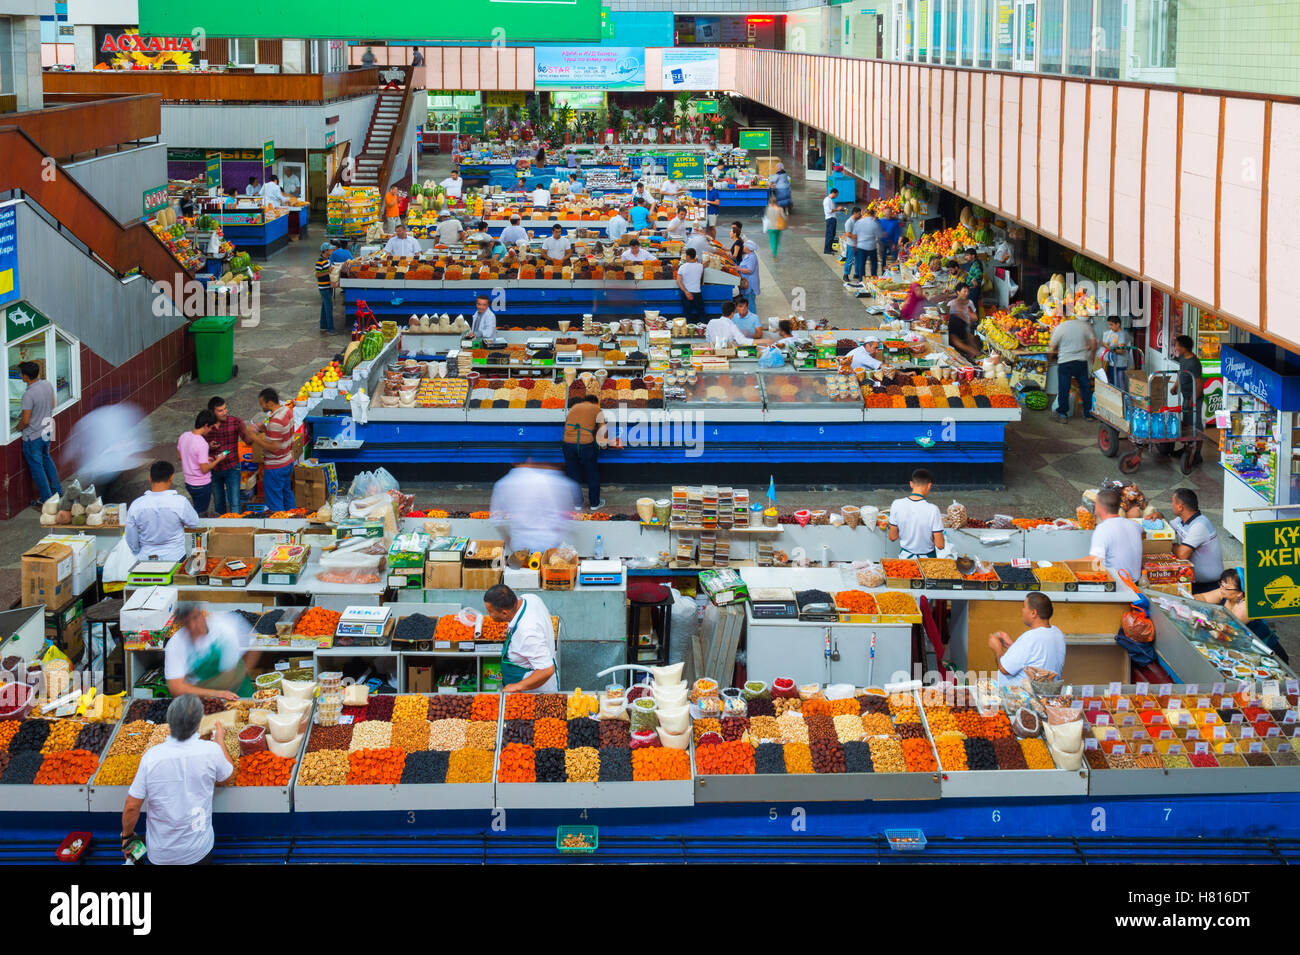 Zelyony Bazar or Green Market, Dried fruit section, Almaty, Kazakhstan, Central Asia - Stock Image